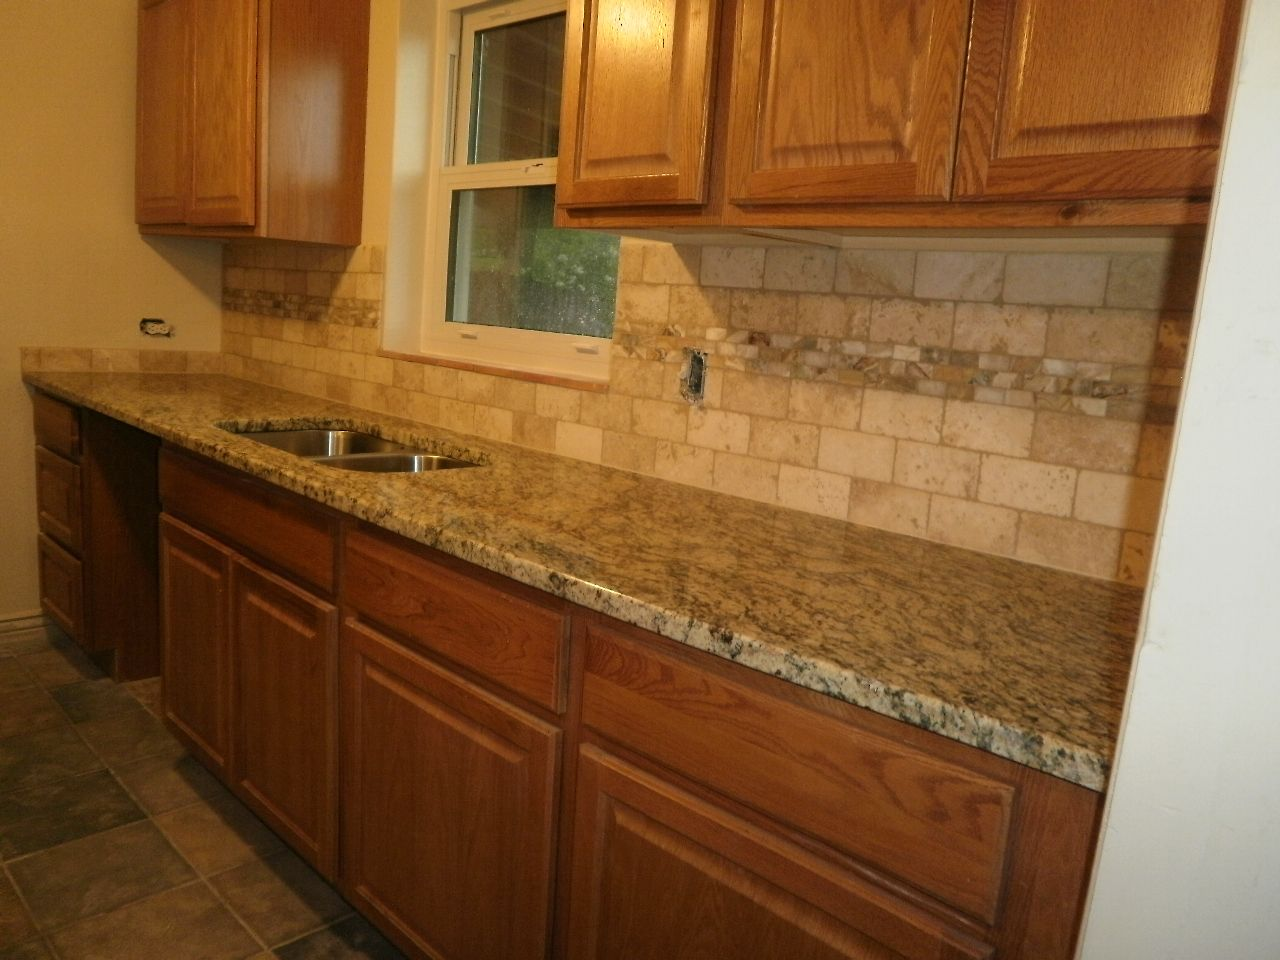 Kitchen Countertops Design Pinterest Kitchen Backsplash Ideas Granite Countertops Backsplash